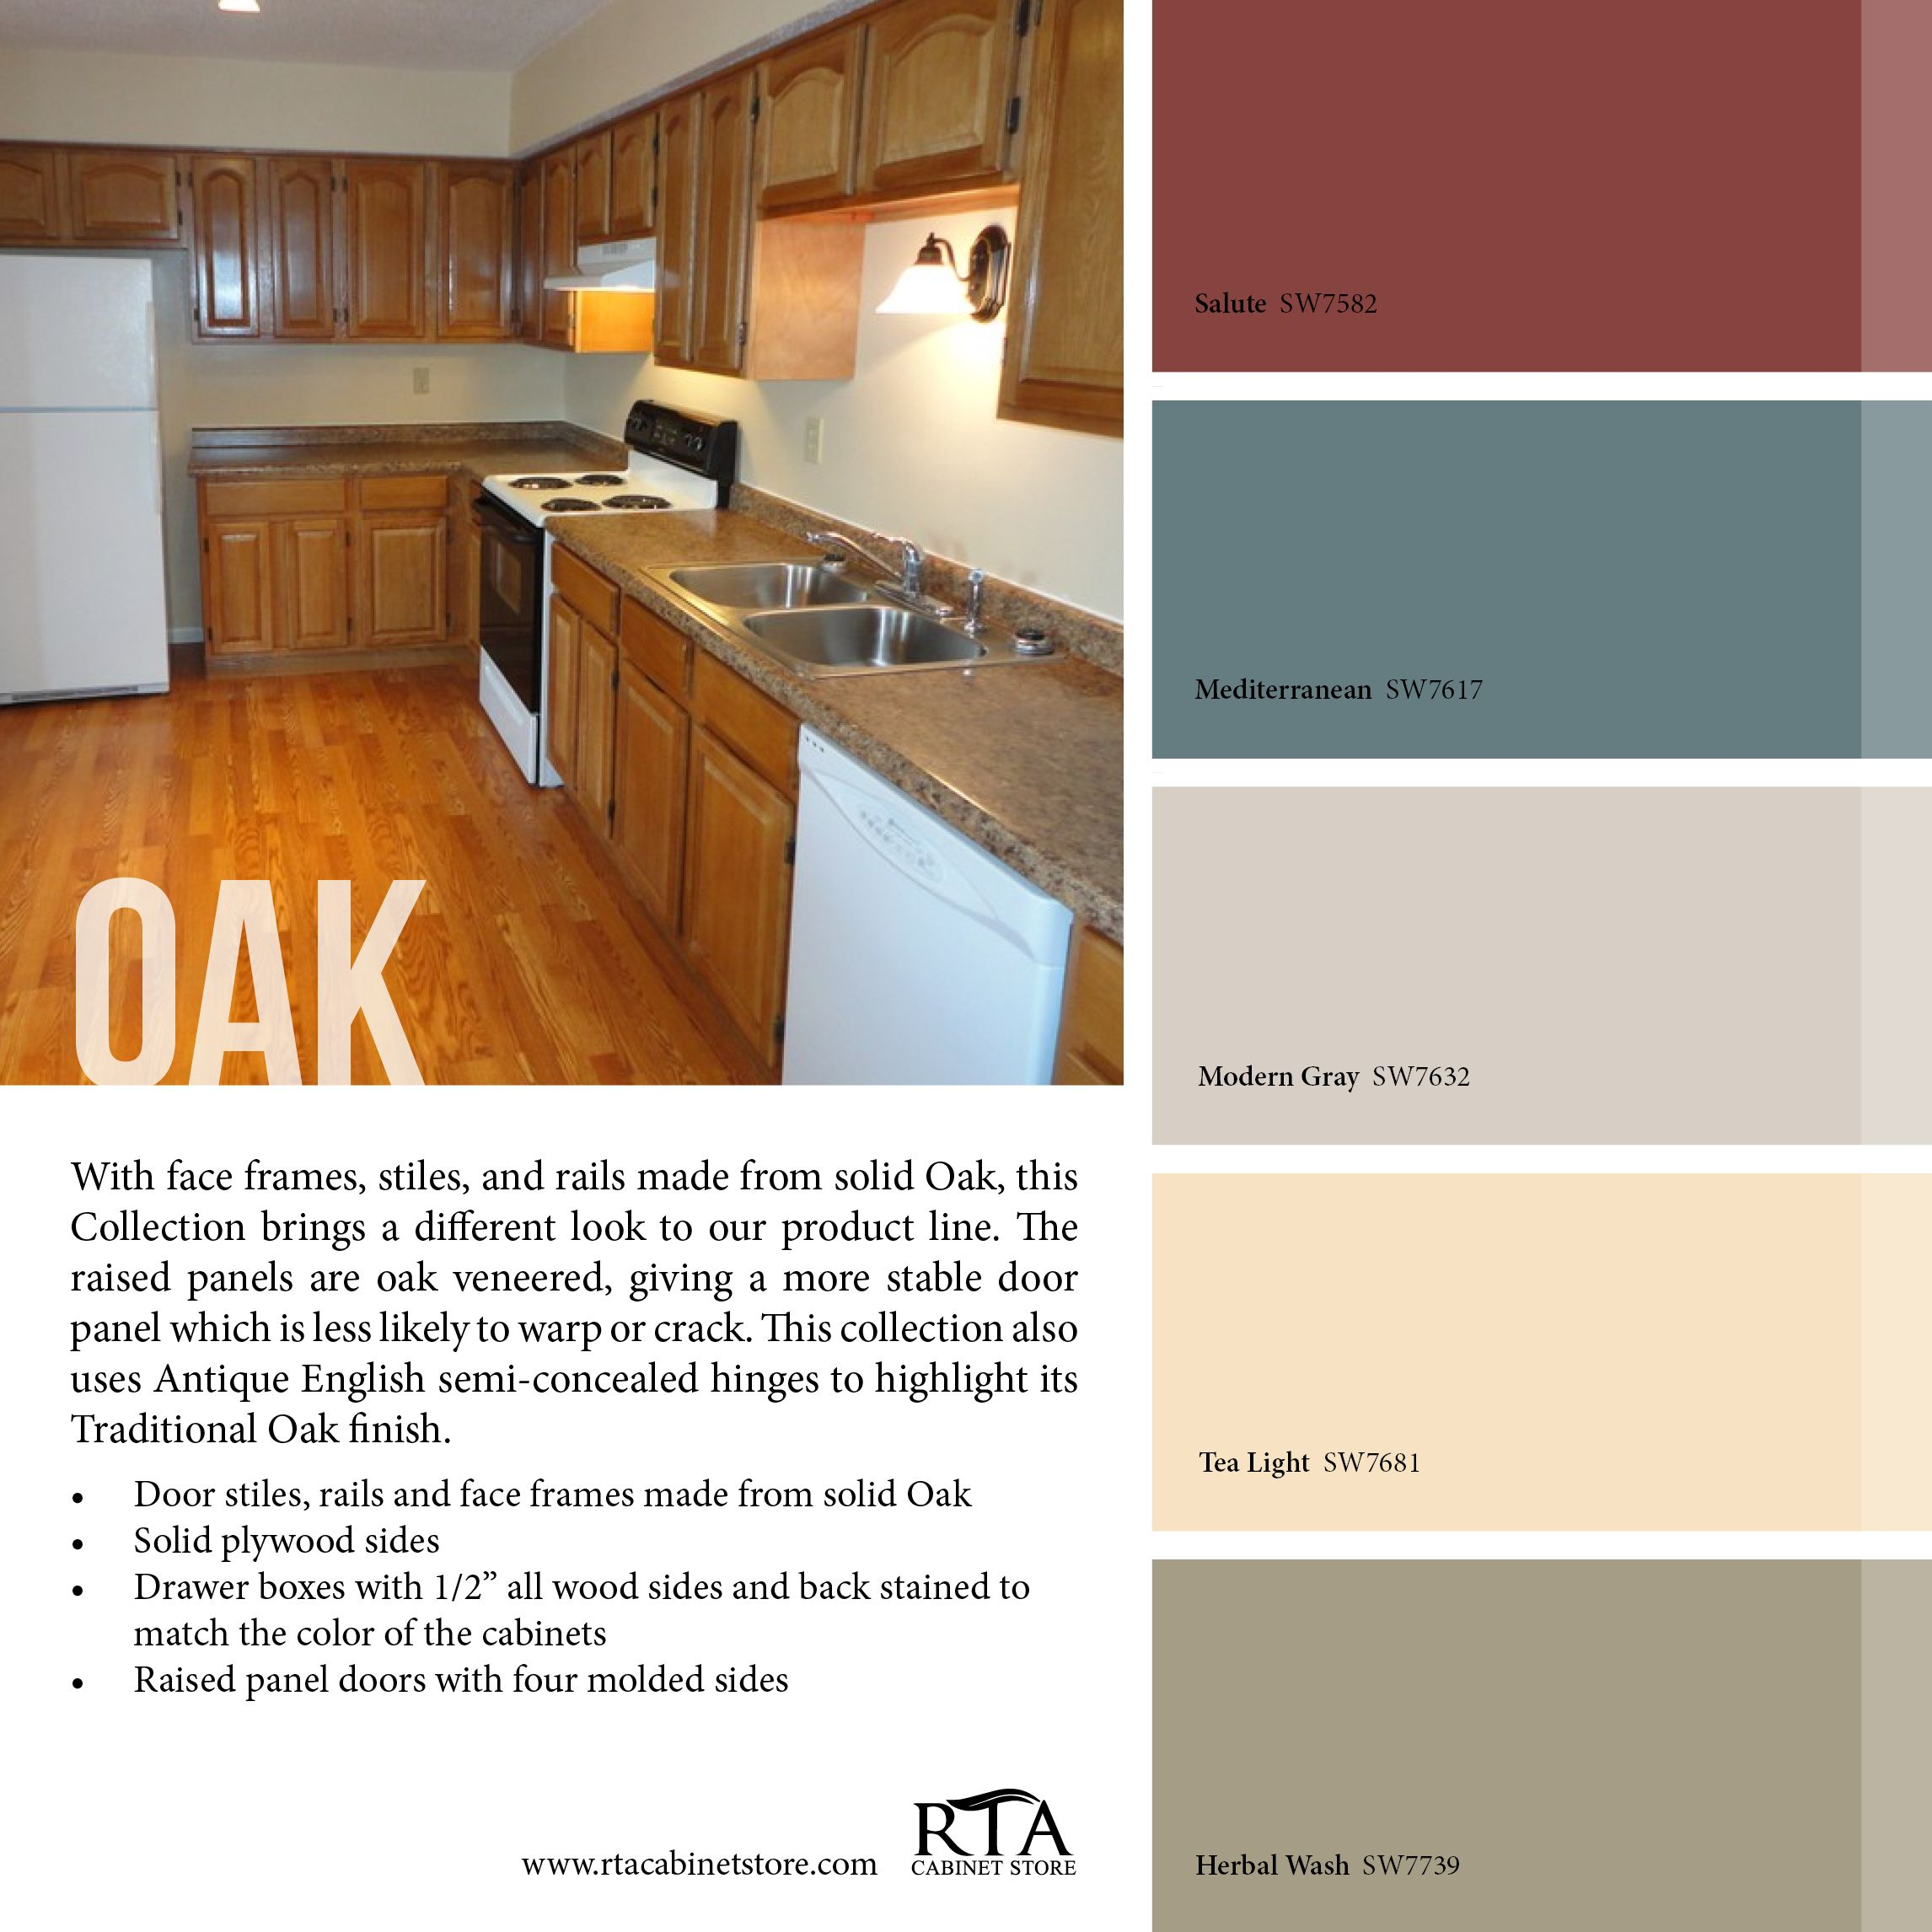 Color Palette To Go With Oak Kitchen Cabinet Line- For